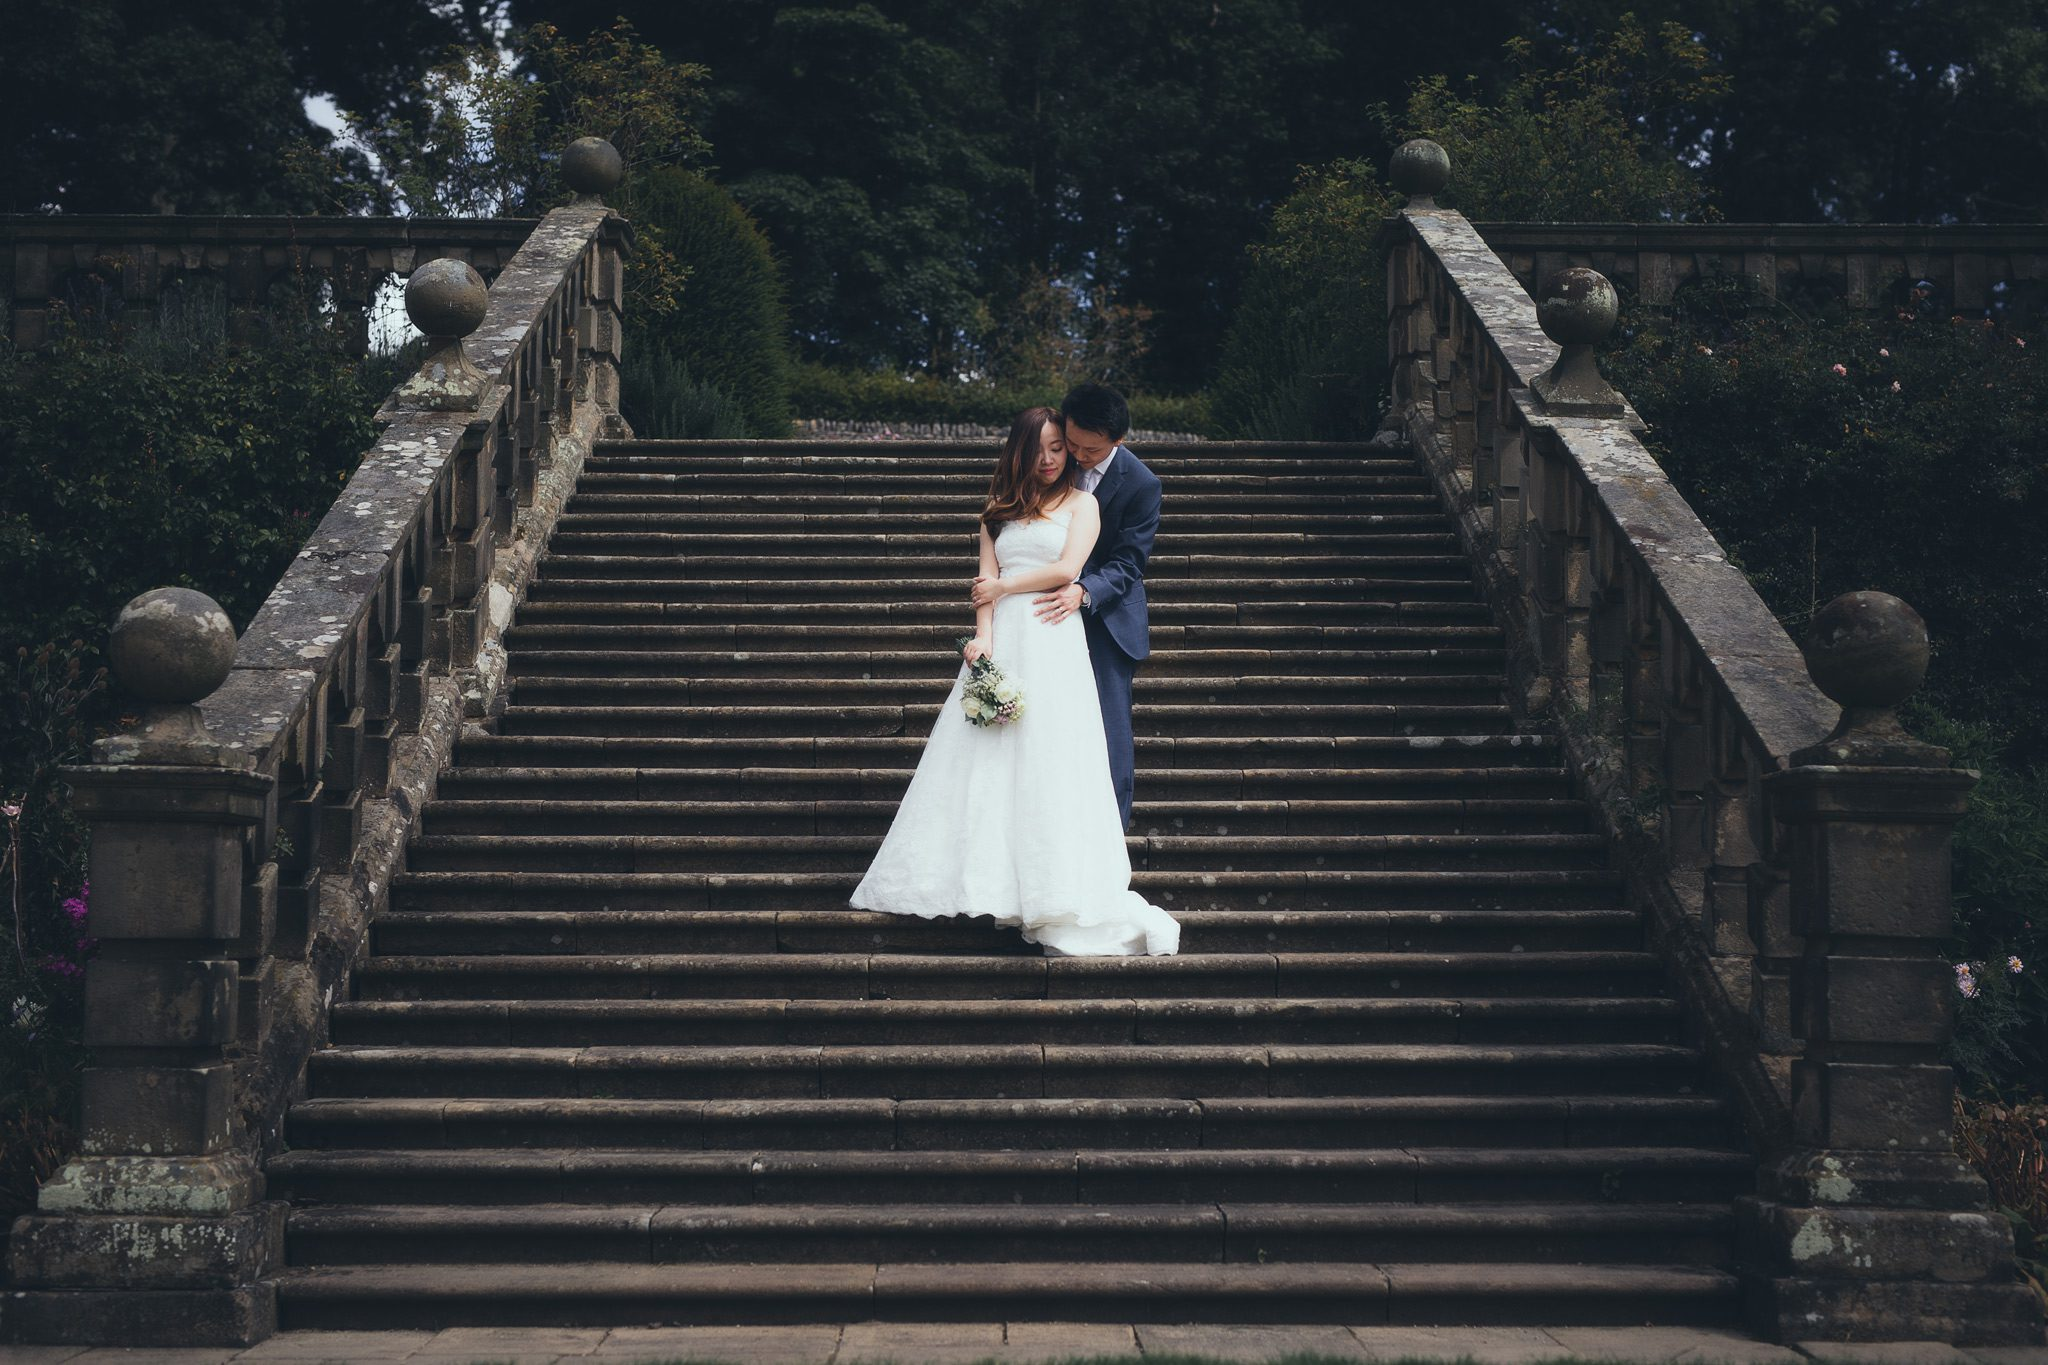 Summer Wedding at Haddon Hall - The couple on the stairs